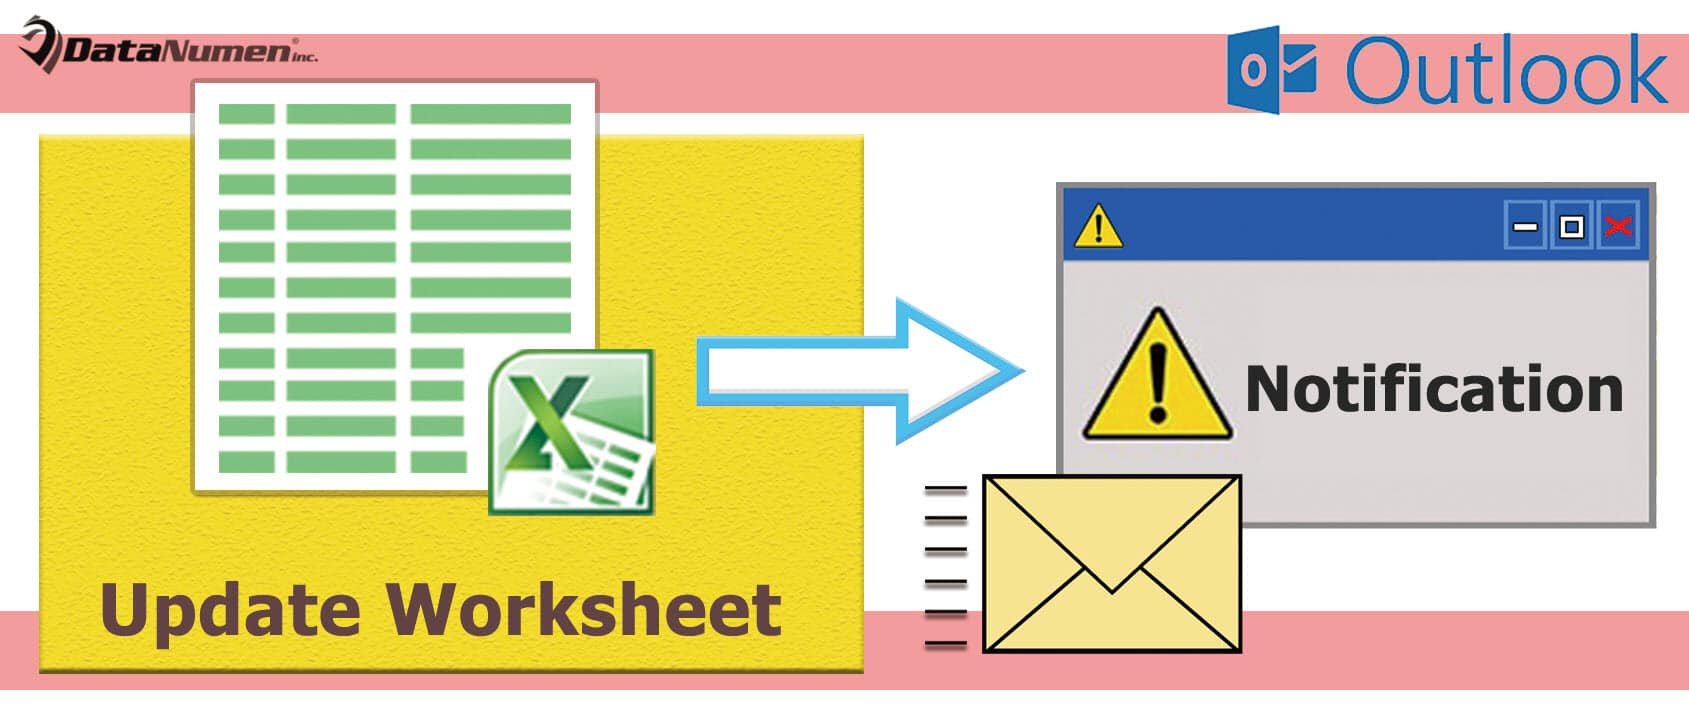 Auto Send an Outlook Email Notification when a Specific Excel Worksheet Is Updated